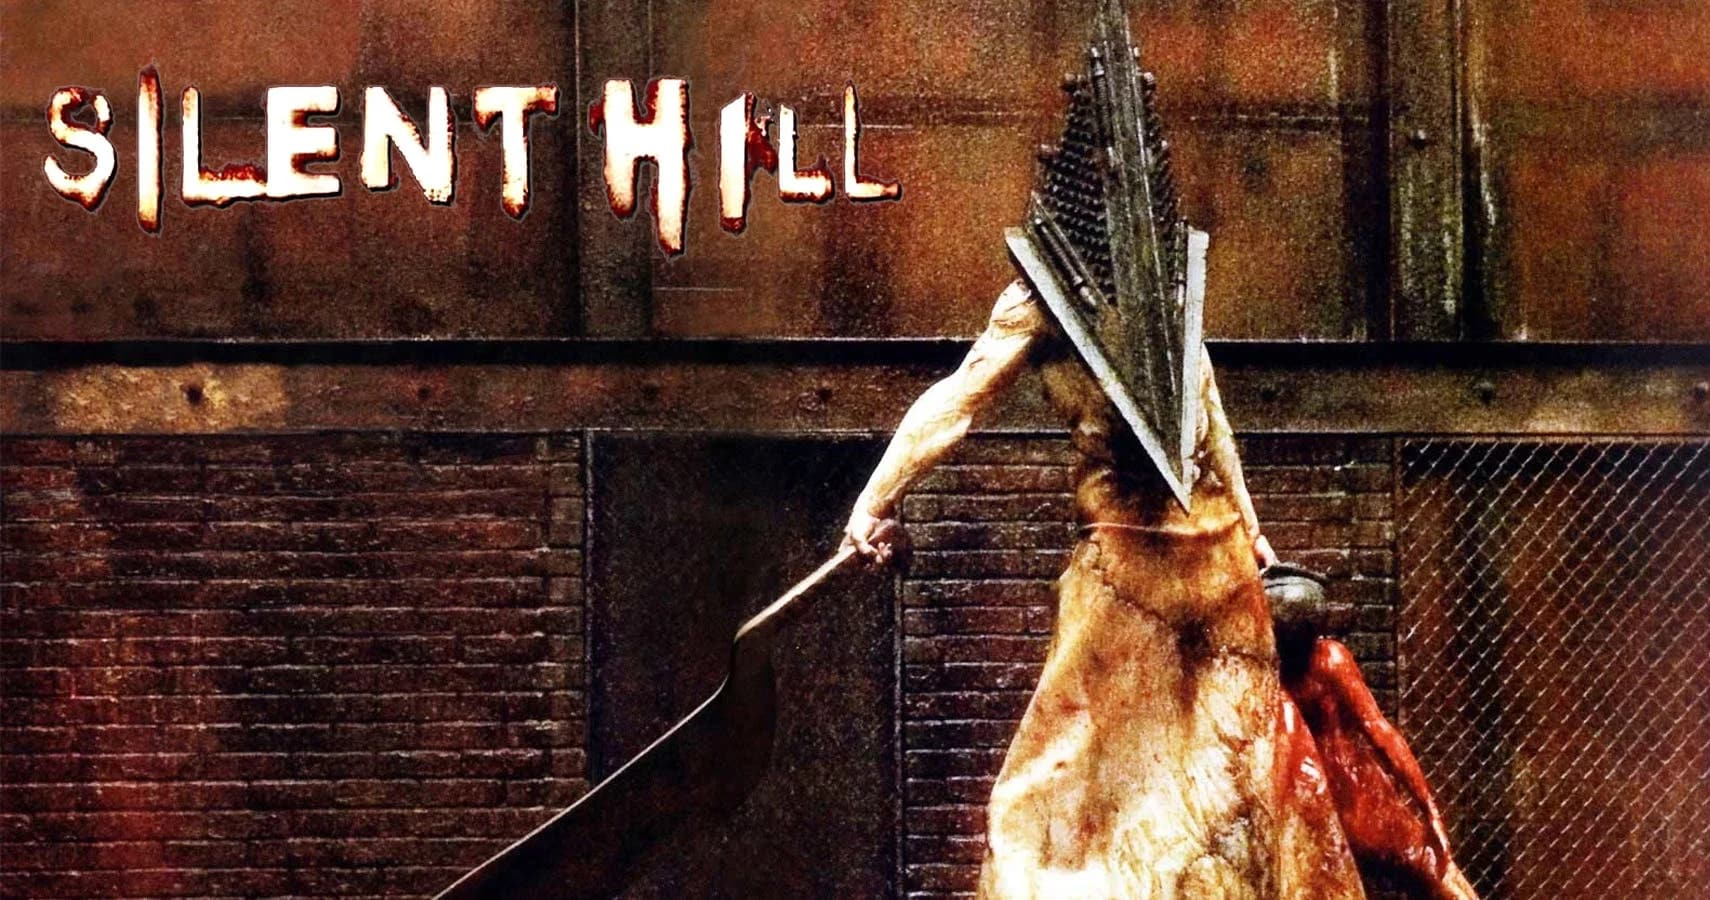 Silent Hill Fans Freaking Out Over New Pyramid Head Dlc In Dead By